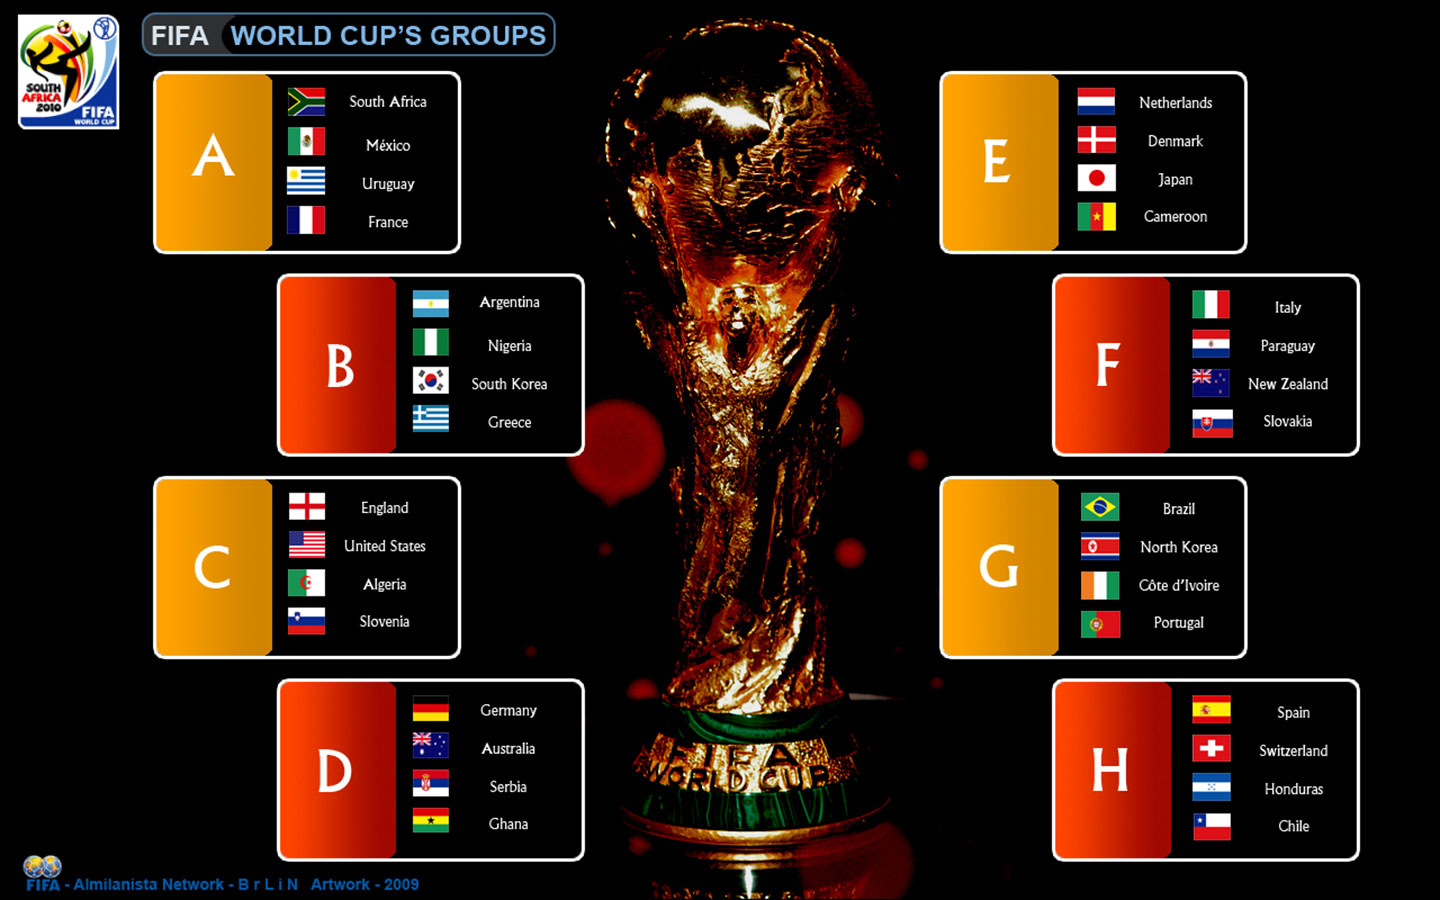 http://2.bp.blogspot.com/_cUx9J1z1e7I/TBujlPOs9ZI/AAAAAAAAEKA/k6TtI7_Cif4/s1600/FIFA-World-Cup-2010-Groups-Widescreen-Wallpaper.jpg